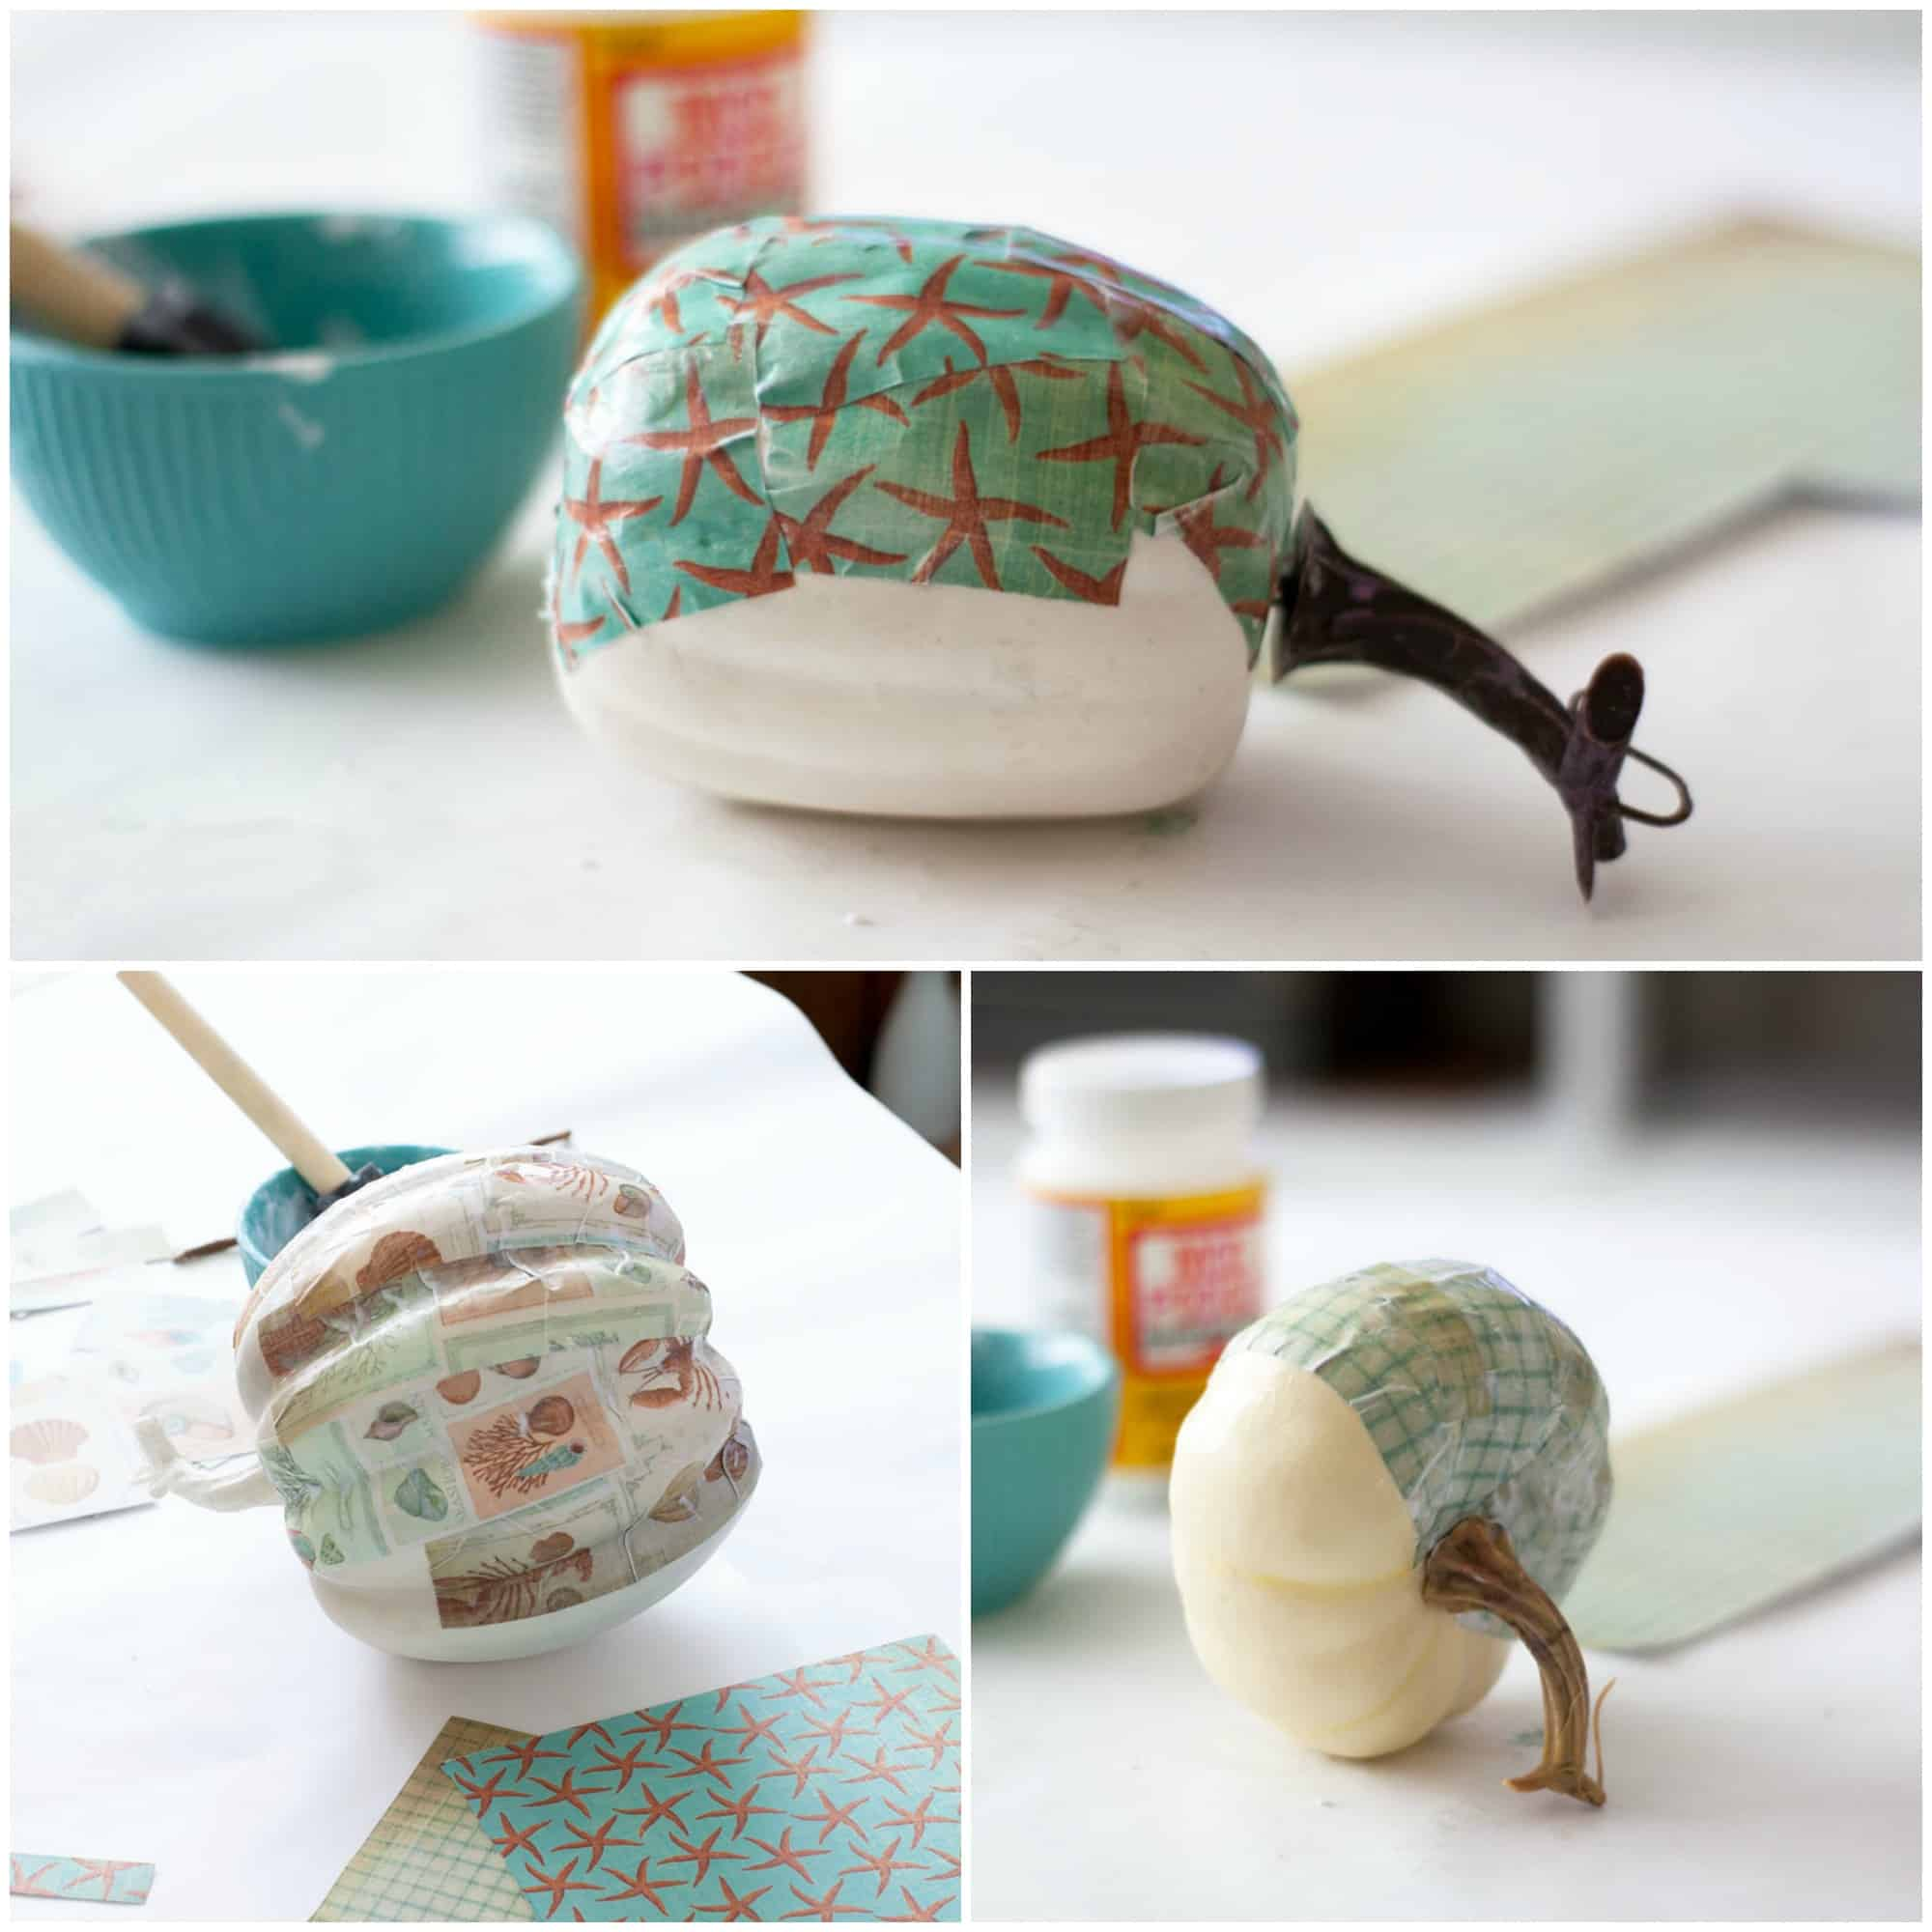 diy mod podge pumpkins coastal style variety of photos with white pumpkin and craft supplies on white countertop